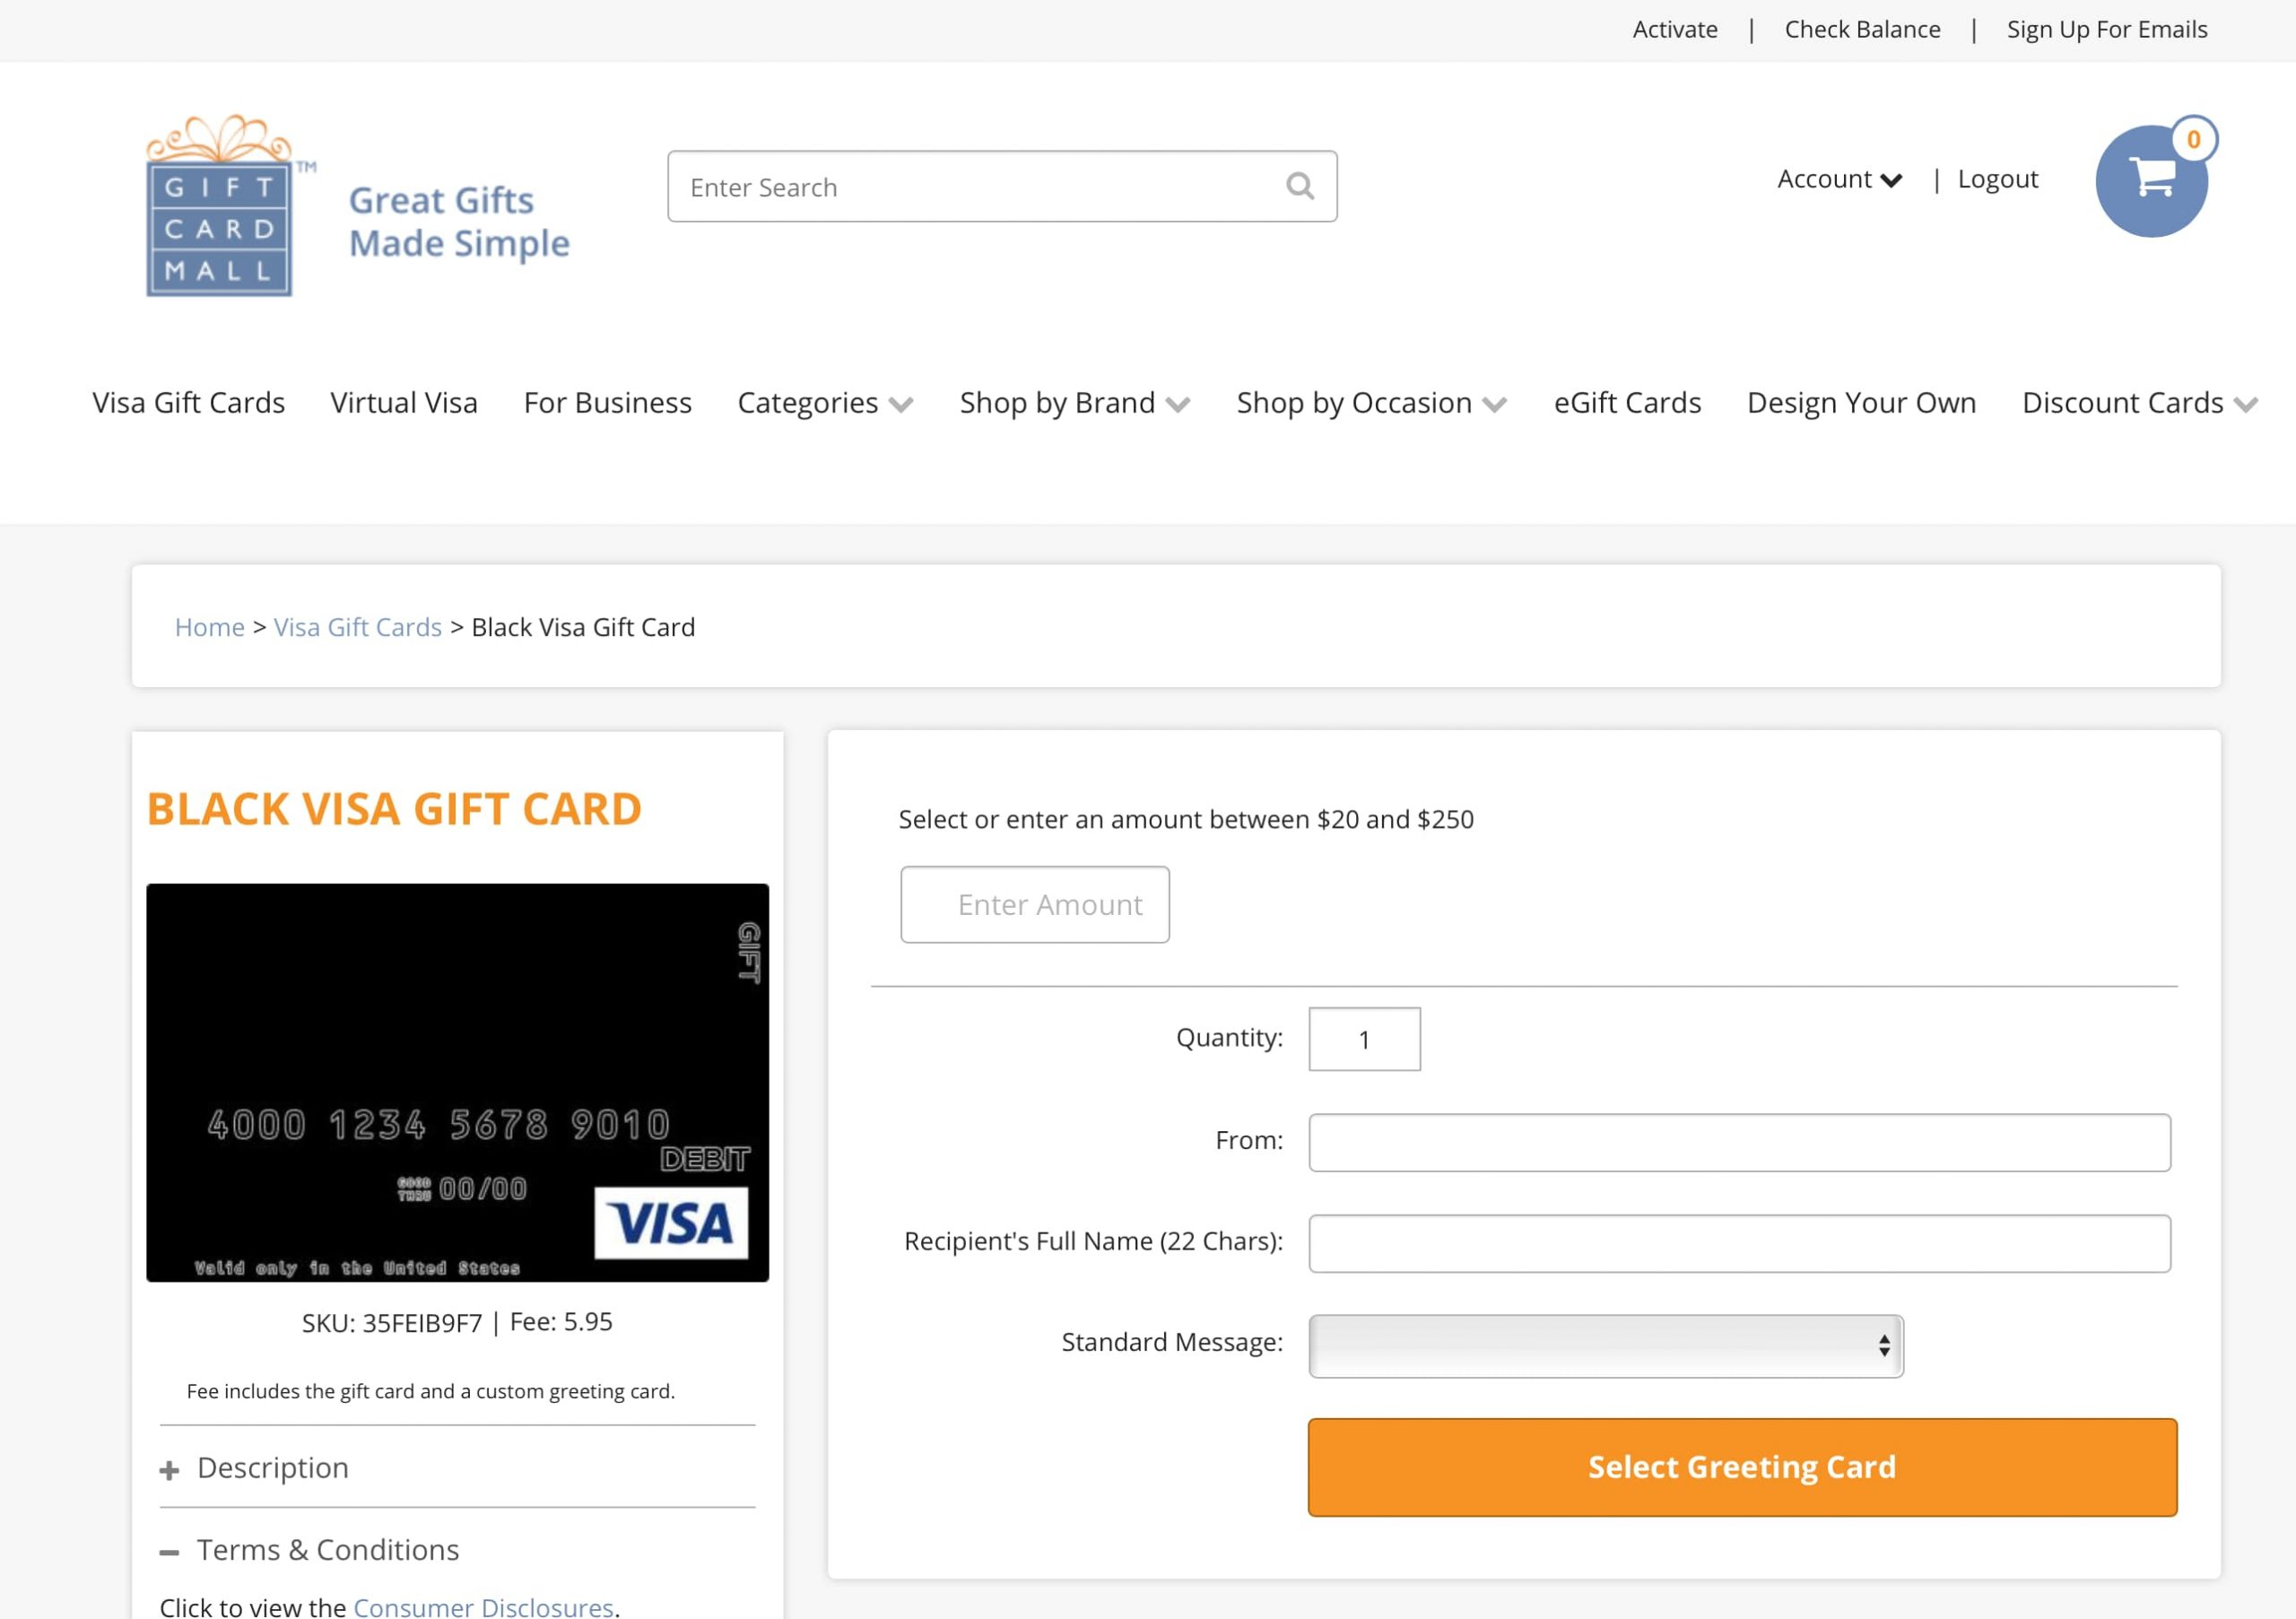 Giftcardmall no longer offering $500 Visa Gift Cards?